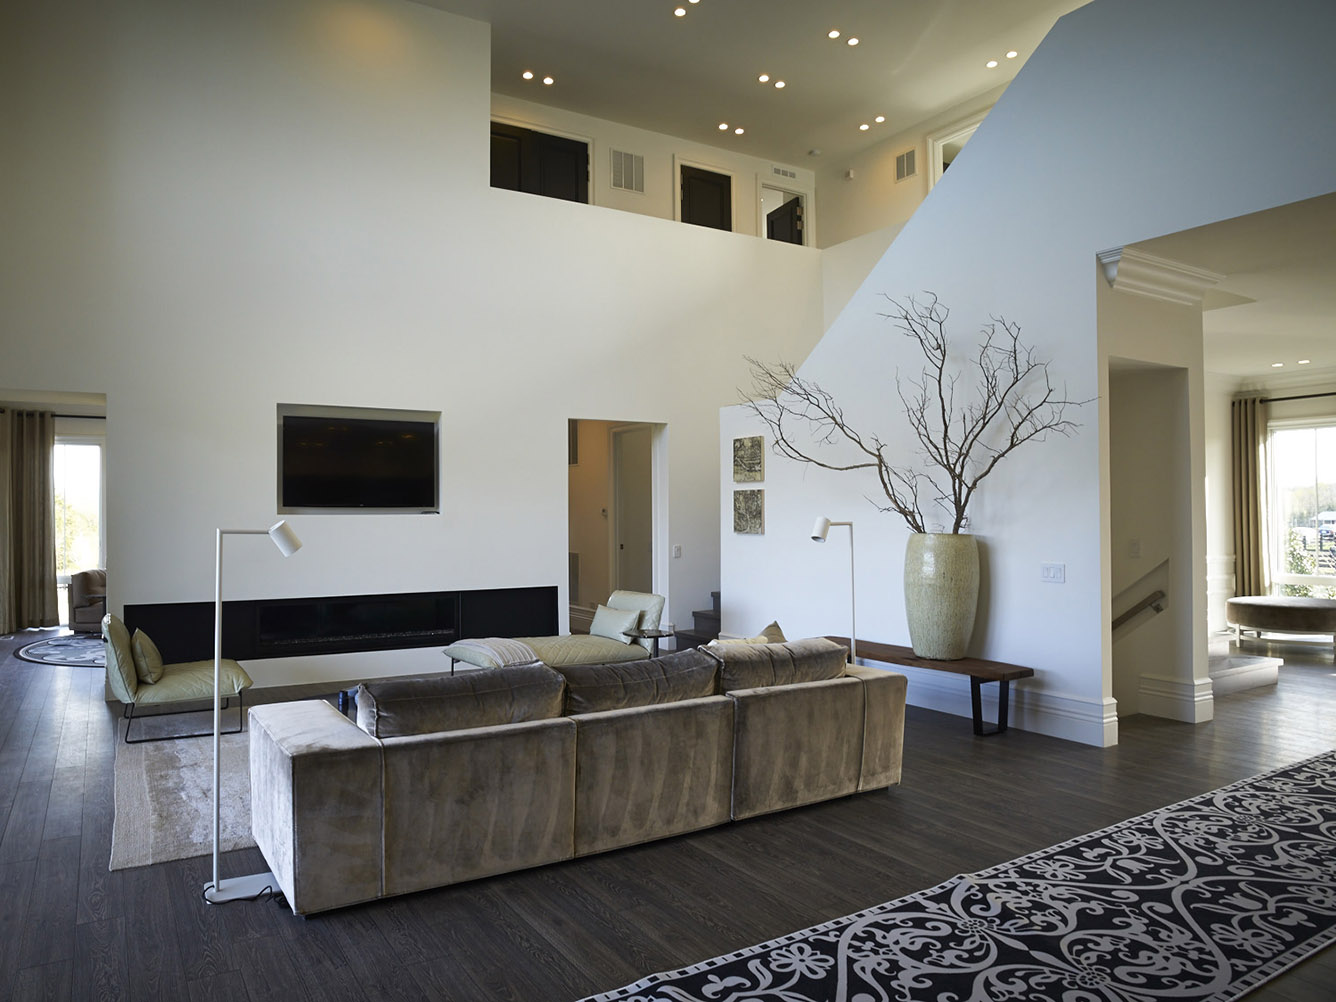 Hovnanian homes at Willowsford with DIEKE sofa, KEKKE longchair and armchair and TRIBE lighting by Maretti